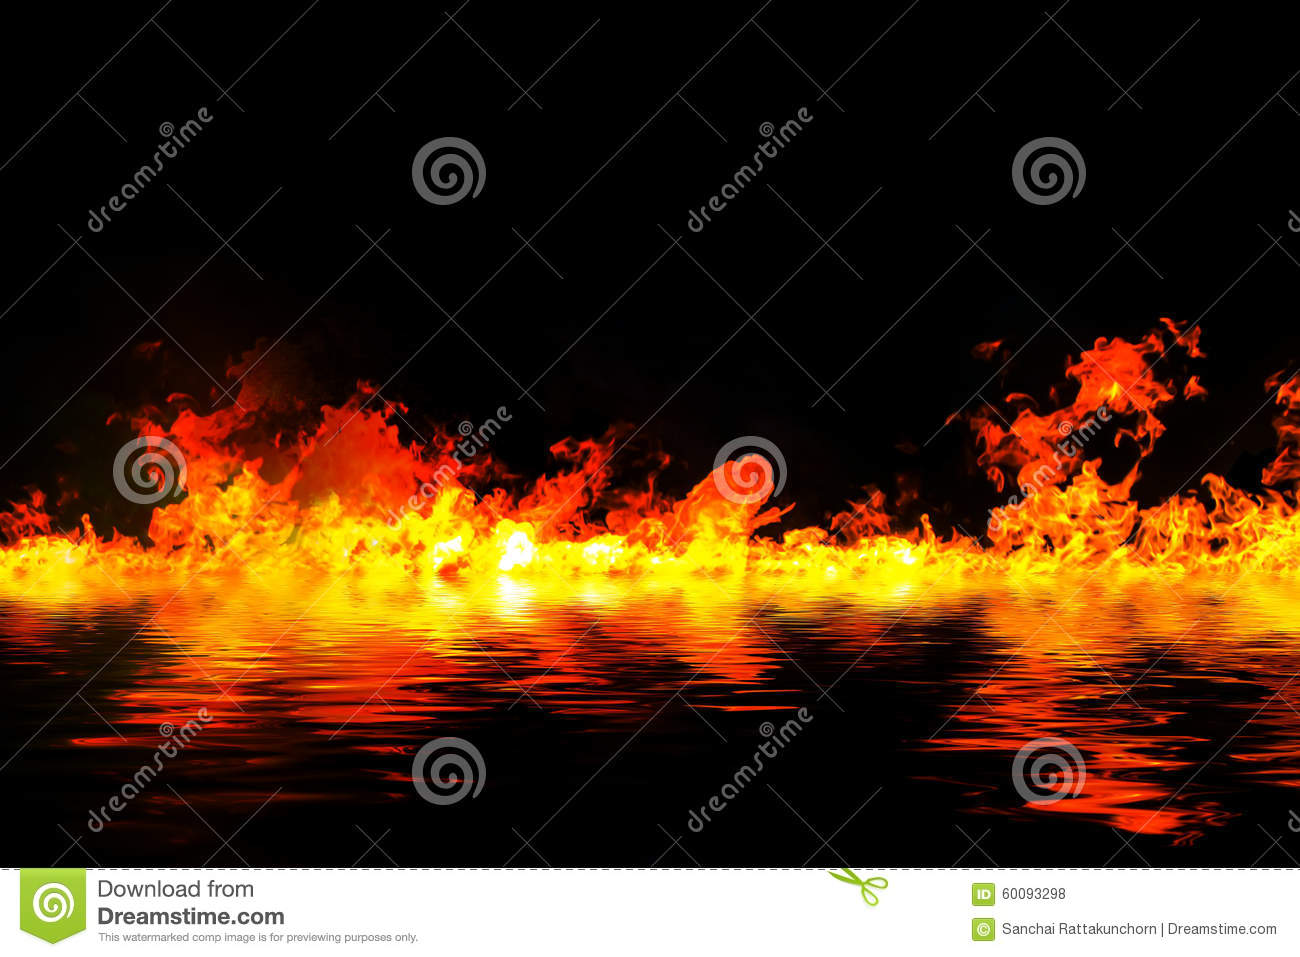 Awesome fire flames with water reflection